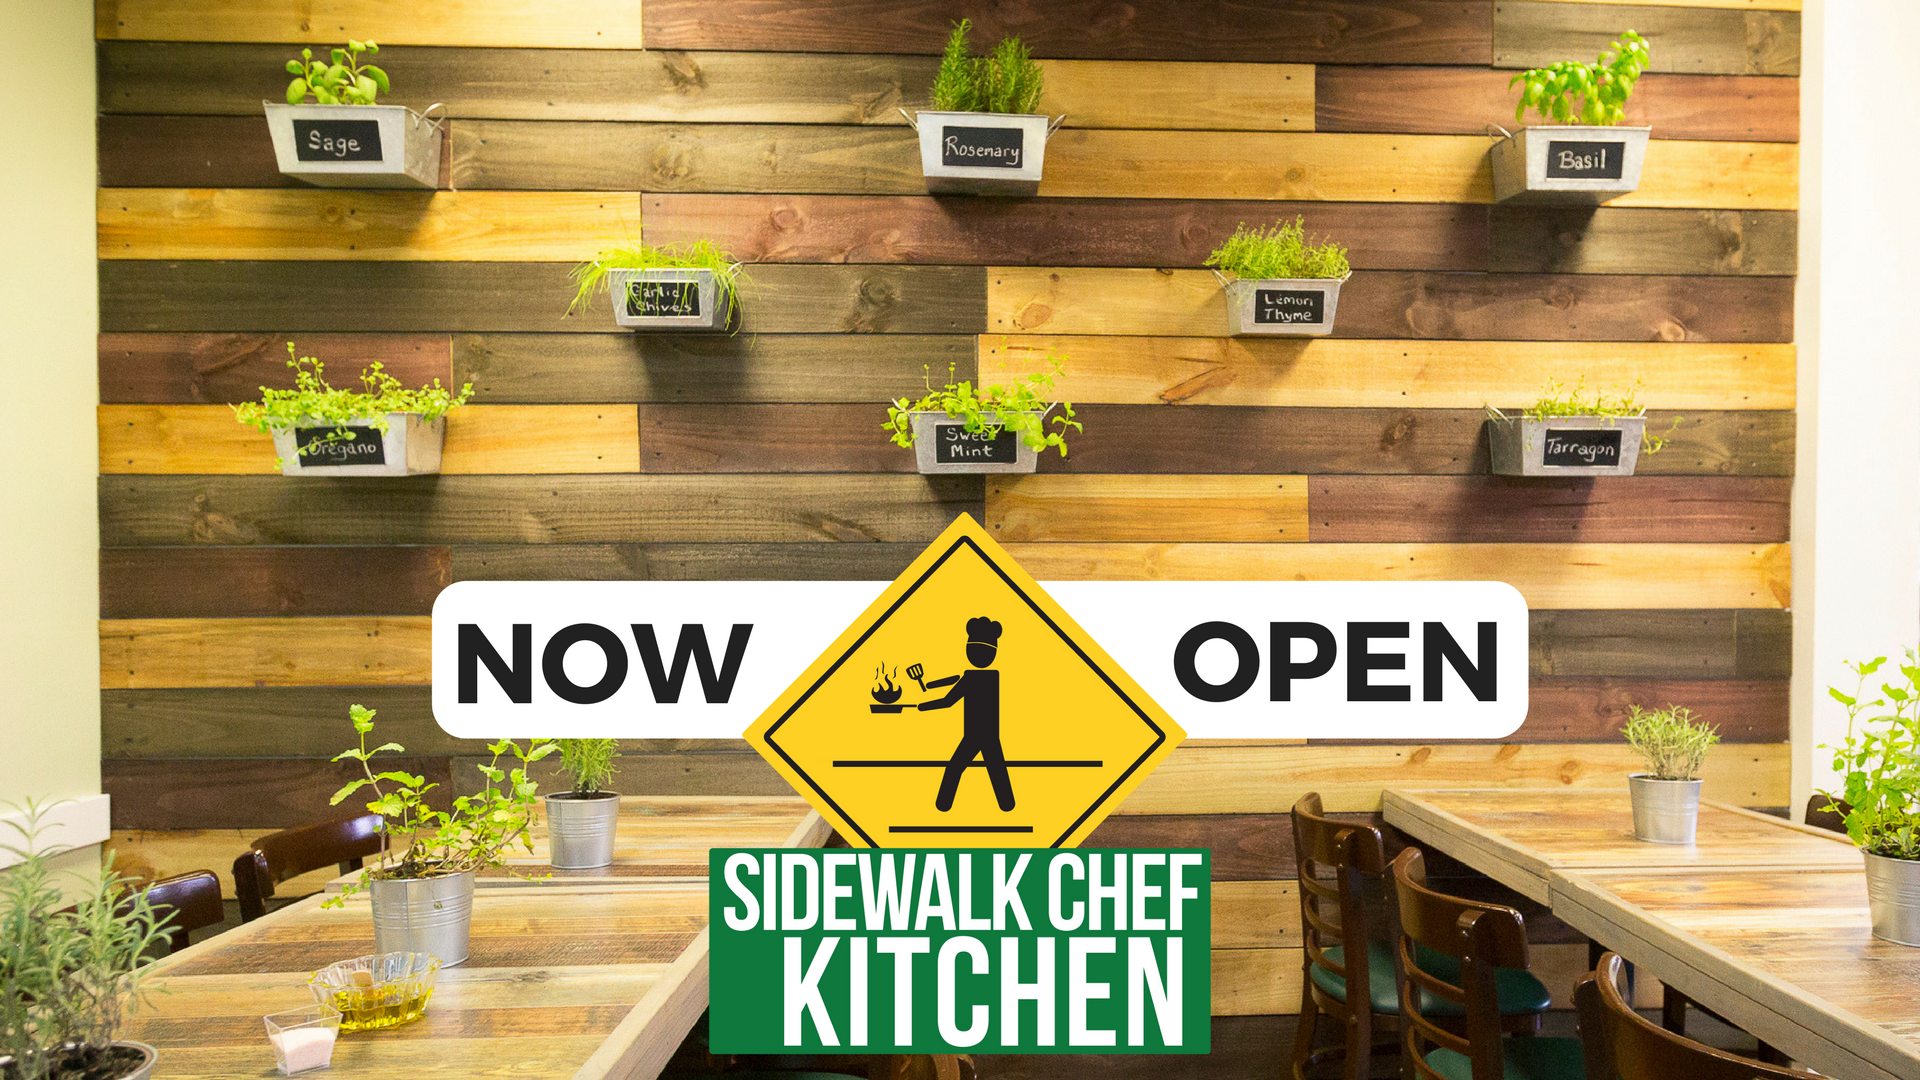 Sidewalk Chef Kitchen Now Open